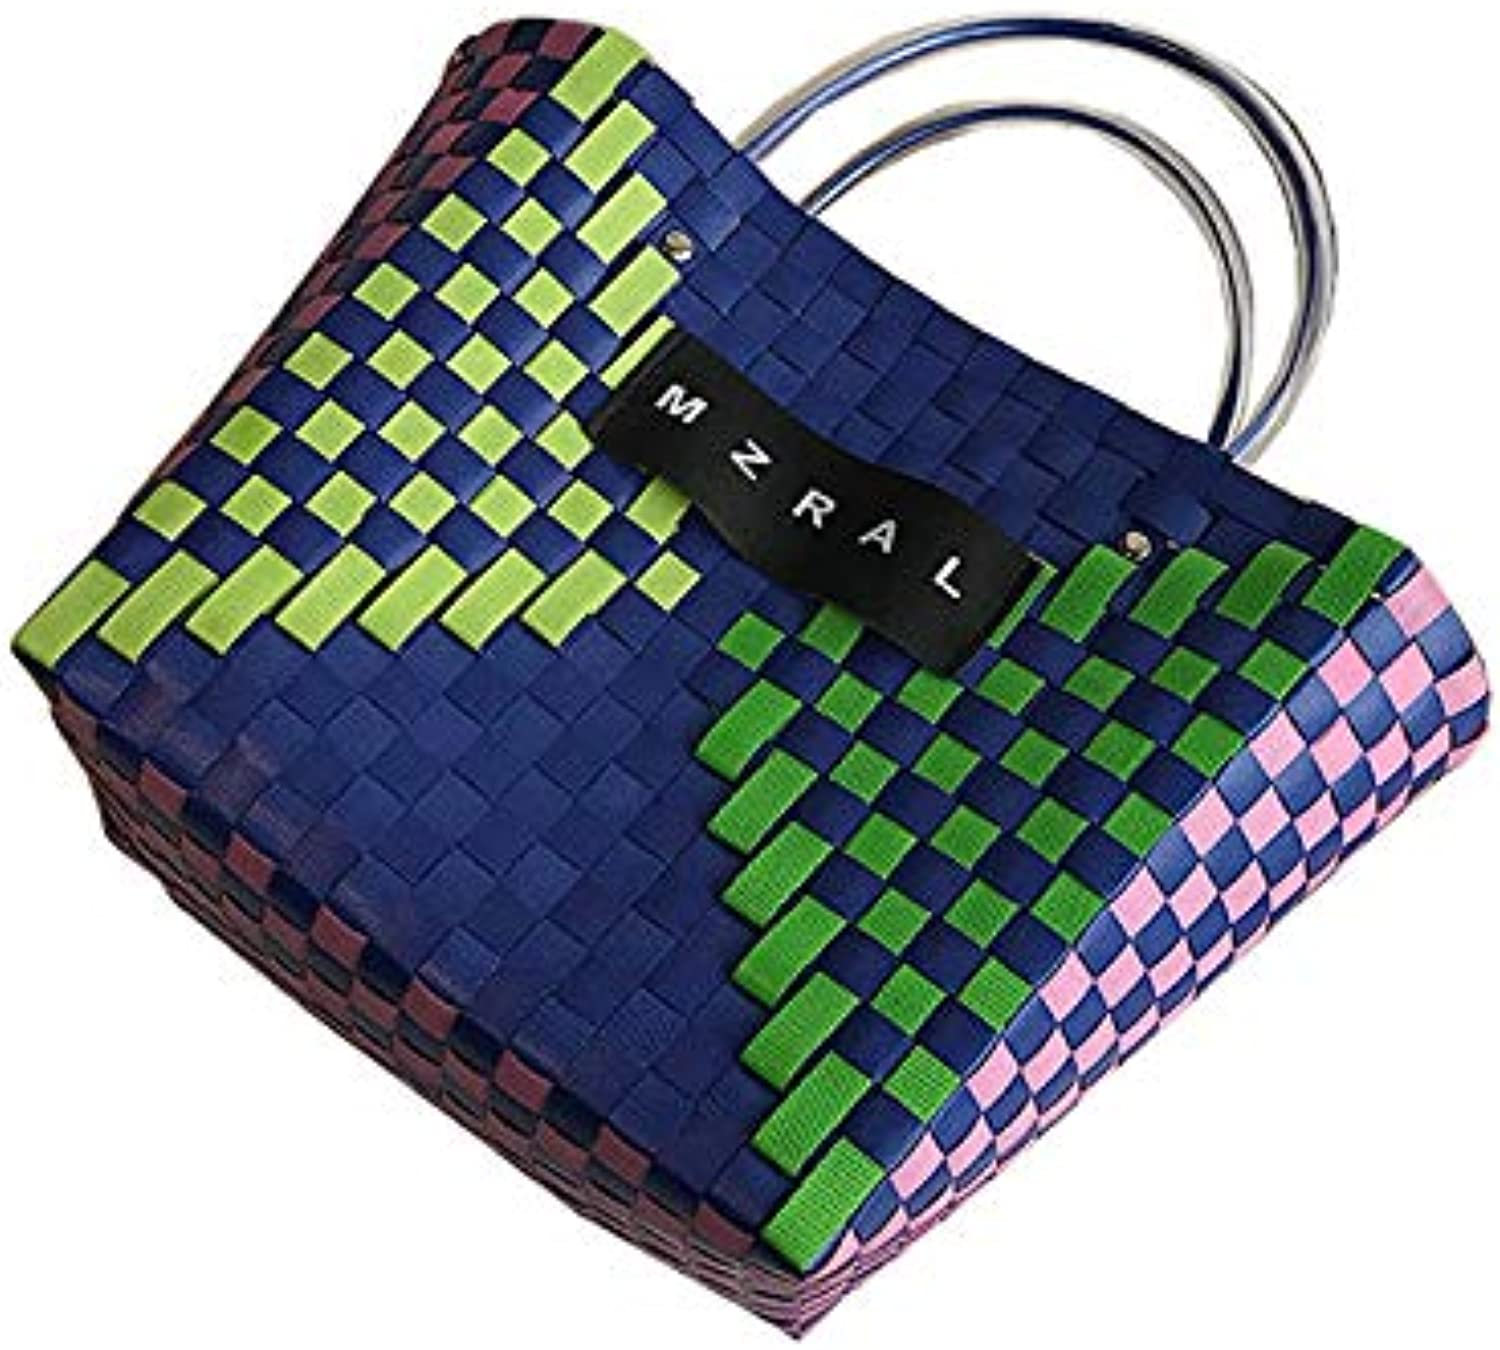 Woven Bag Fashion Girl Portable Basket Bag(A;)